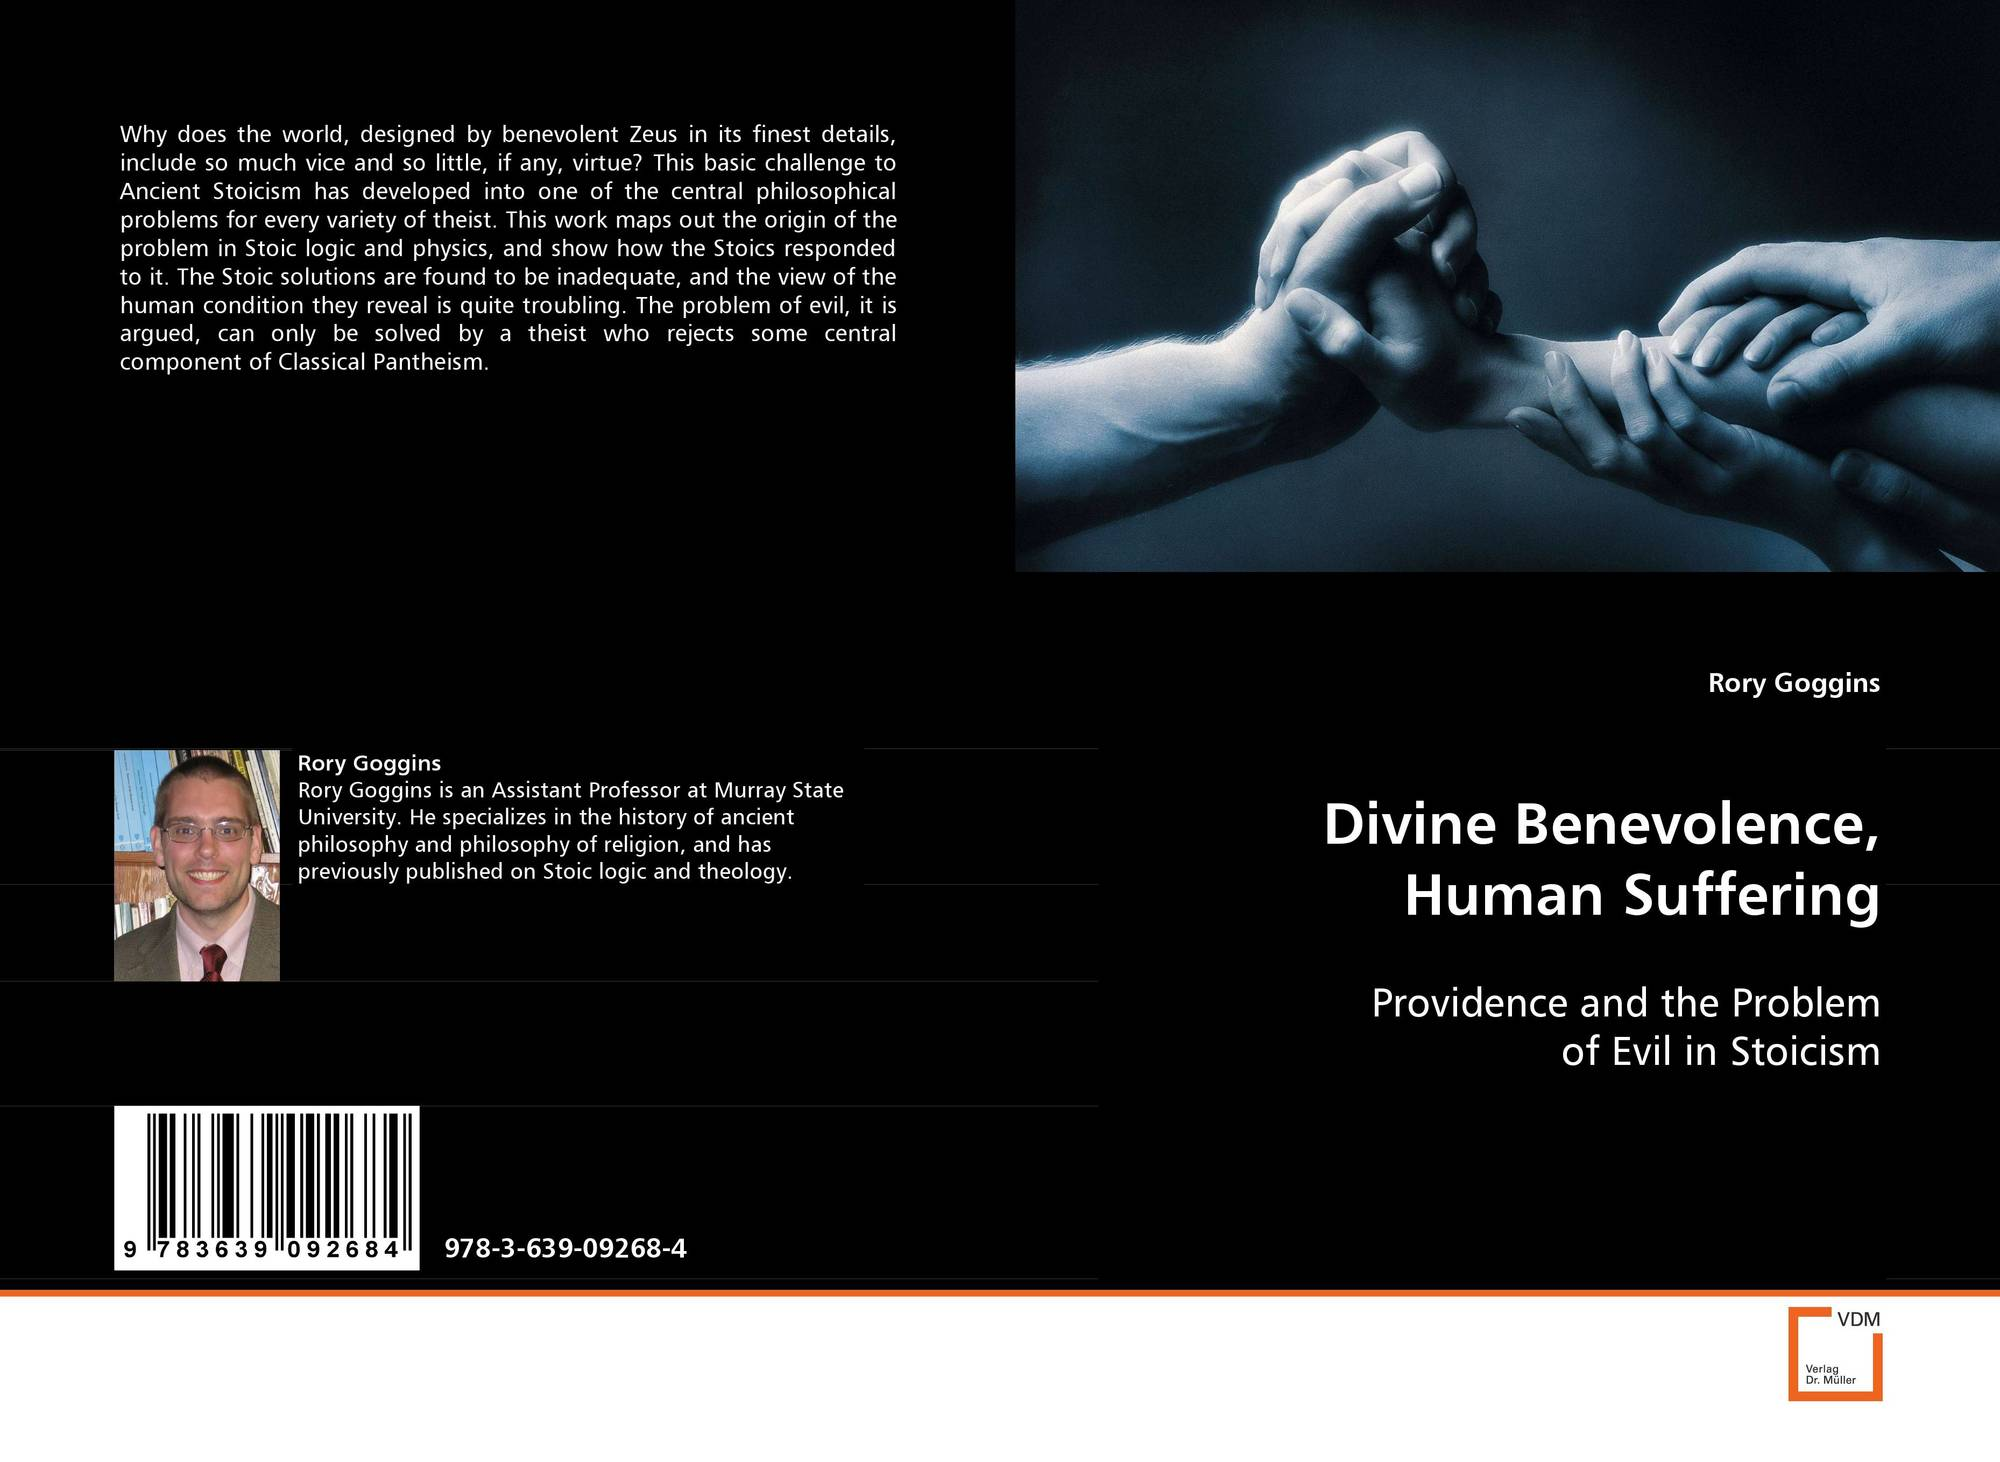 evil suffering and the human condition Evil-skeptics give three main reasons to abandon the concept of evil: (1) the concept of evil involves unwarranted metaphysical commitments to dark spirits, the supernatural, or the devil (2) the concept of evil is useless because it lacks explanatory power and (3) the concept of evil can be harmful or dangerous when used in moral, political, and.